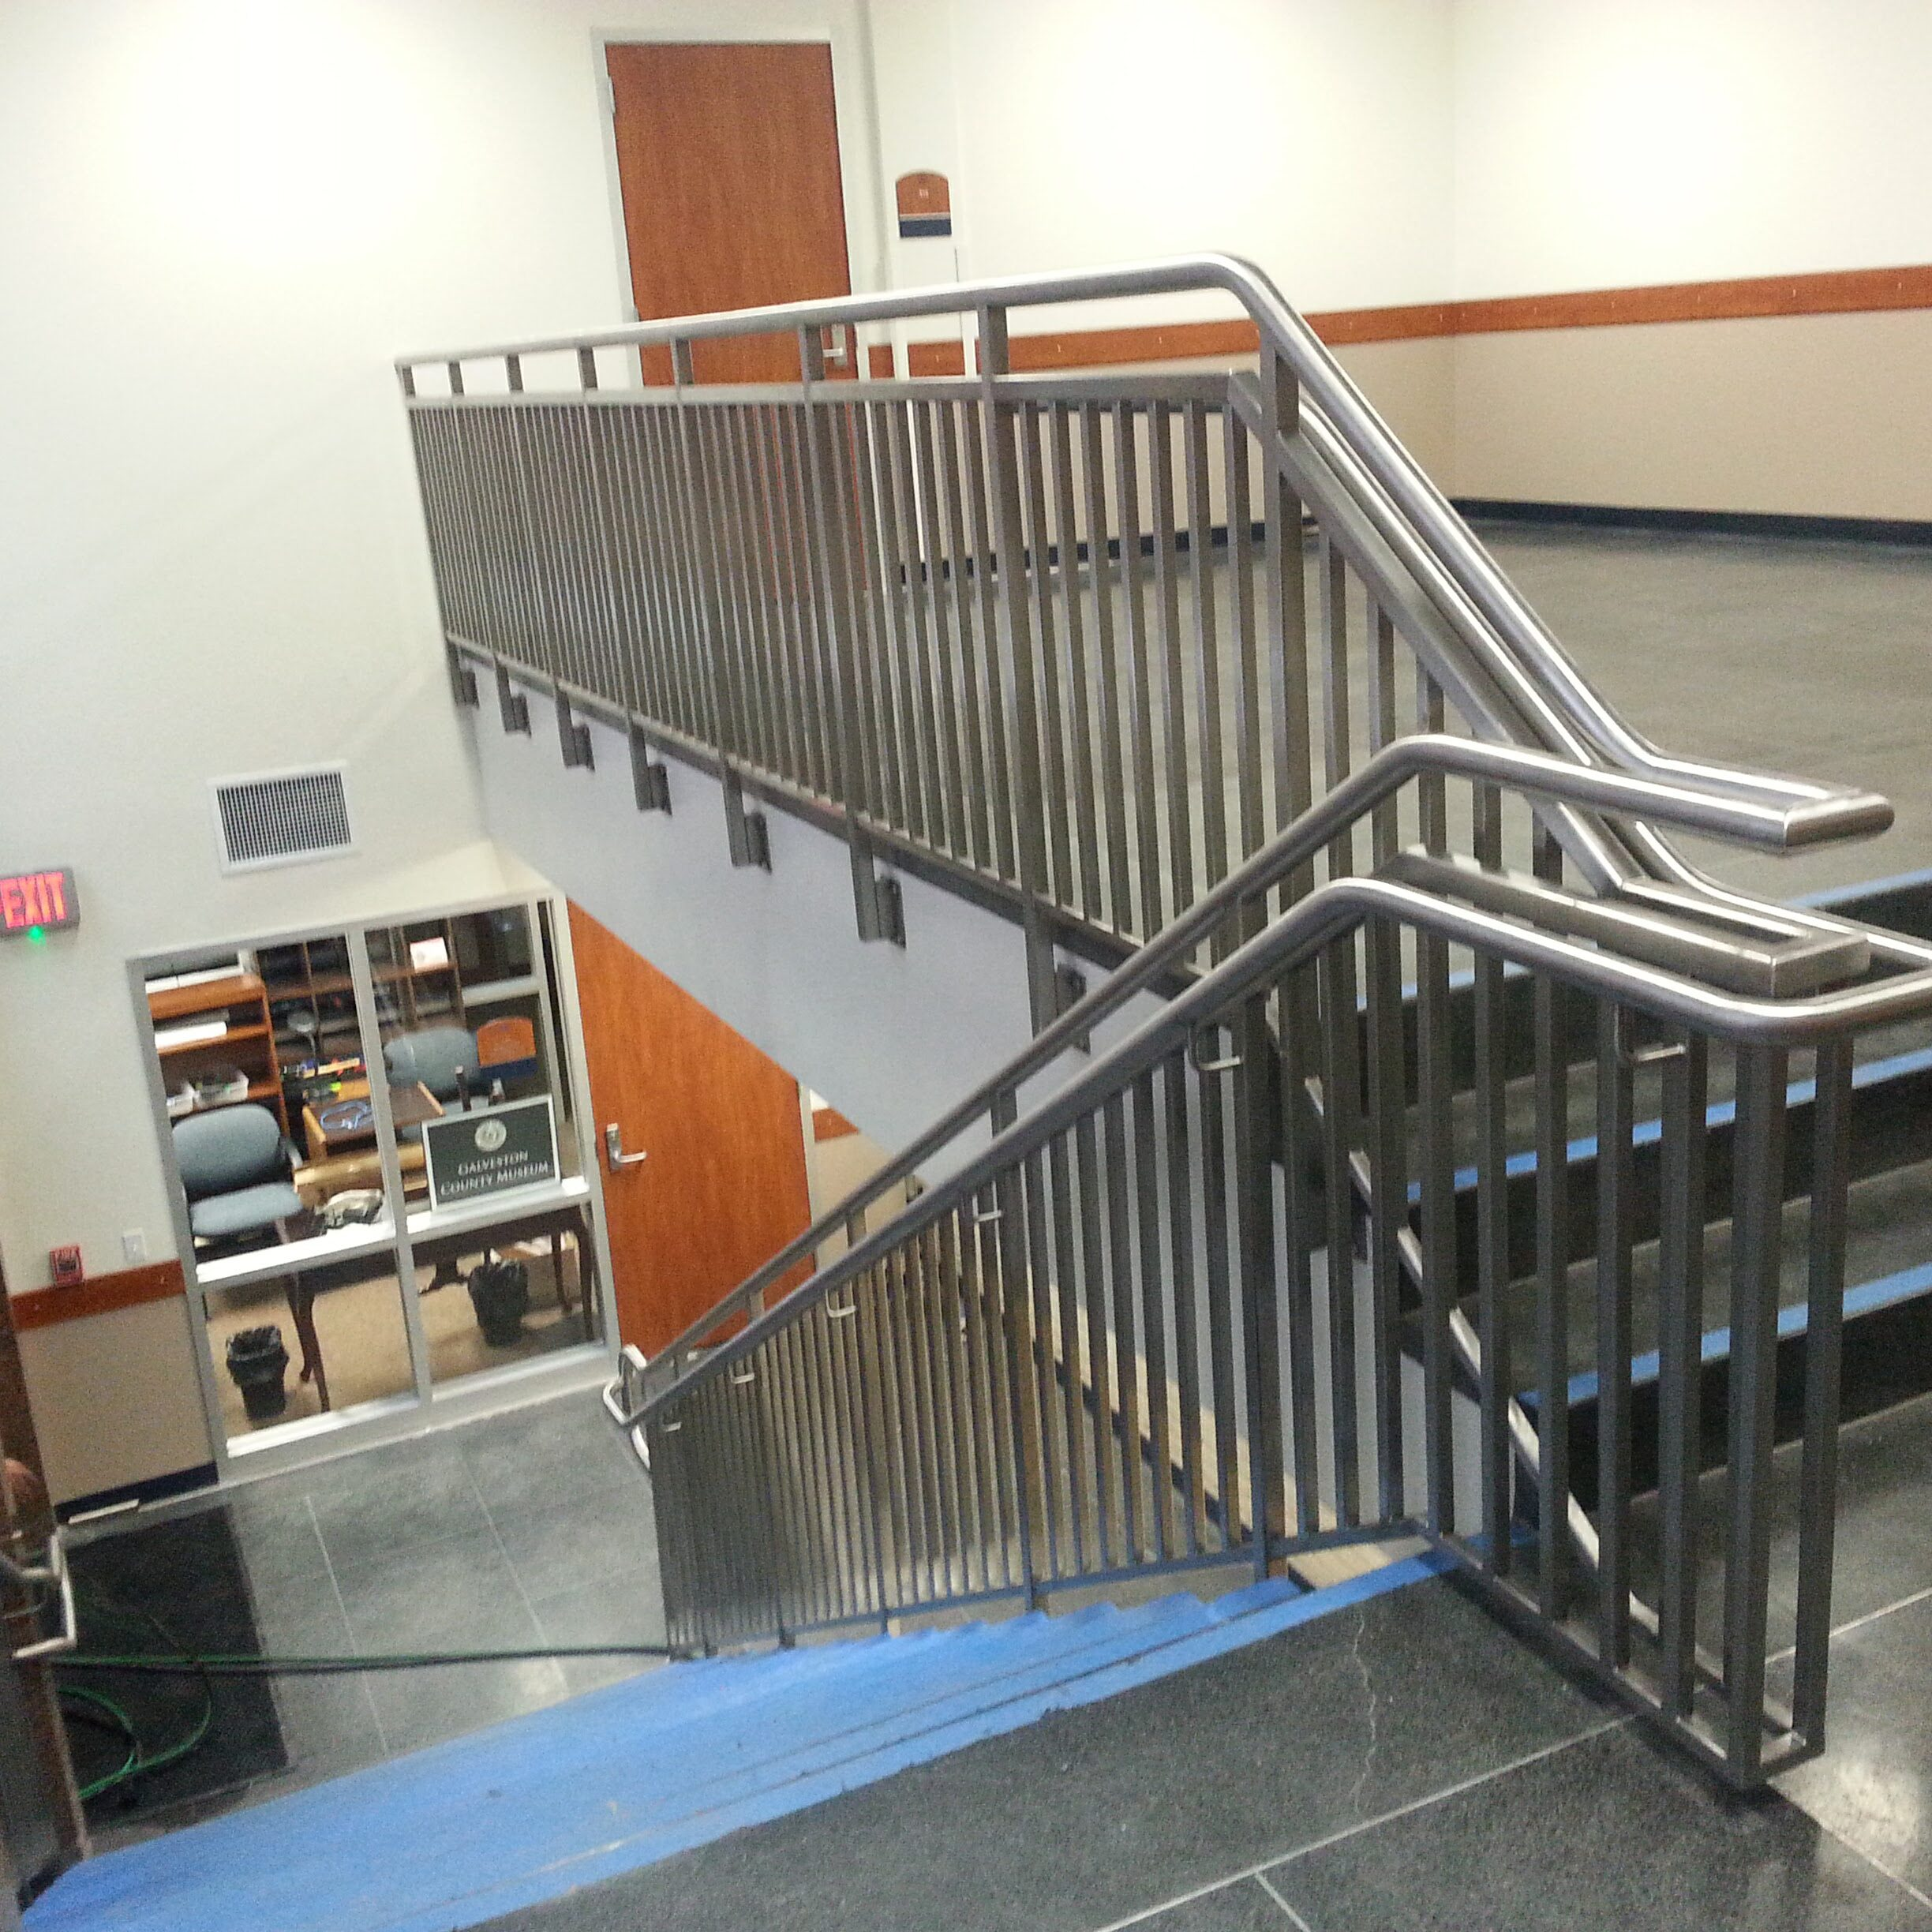 Stainless handrail installed in the Galveston County building.